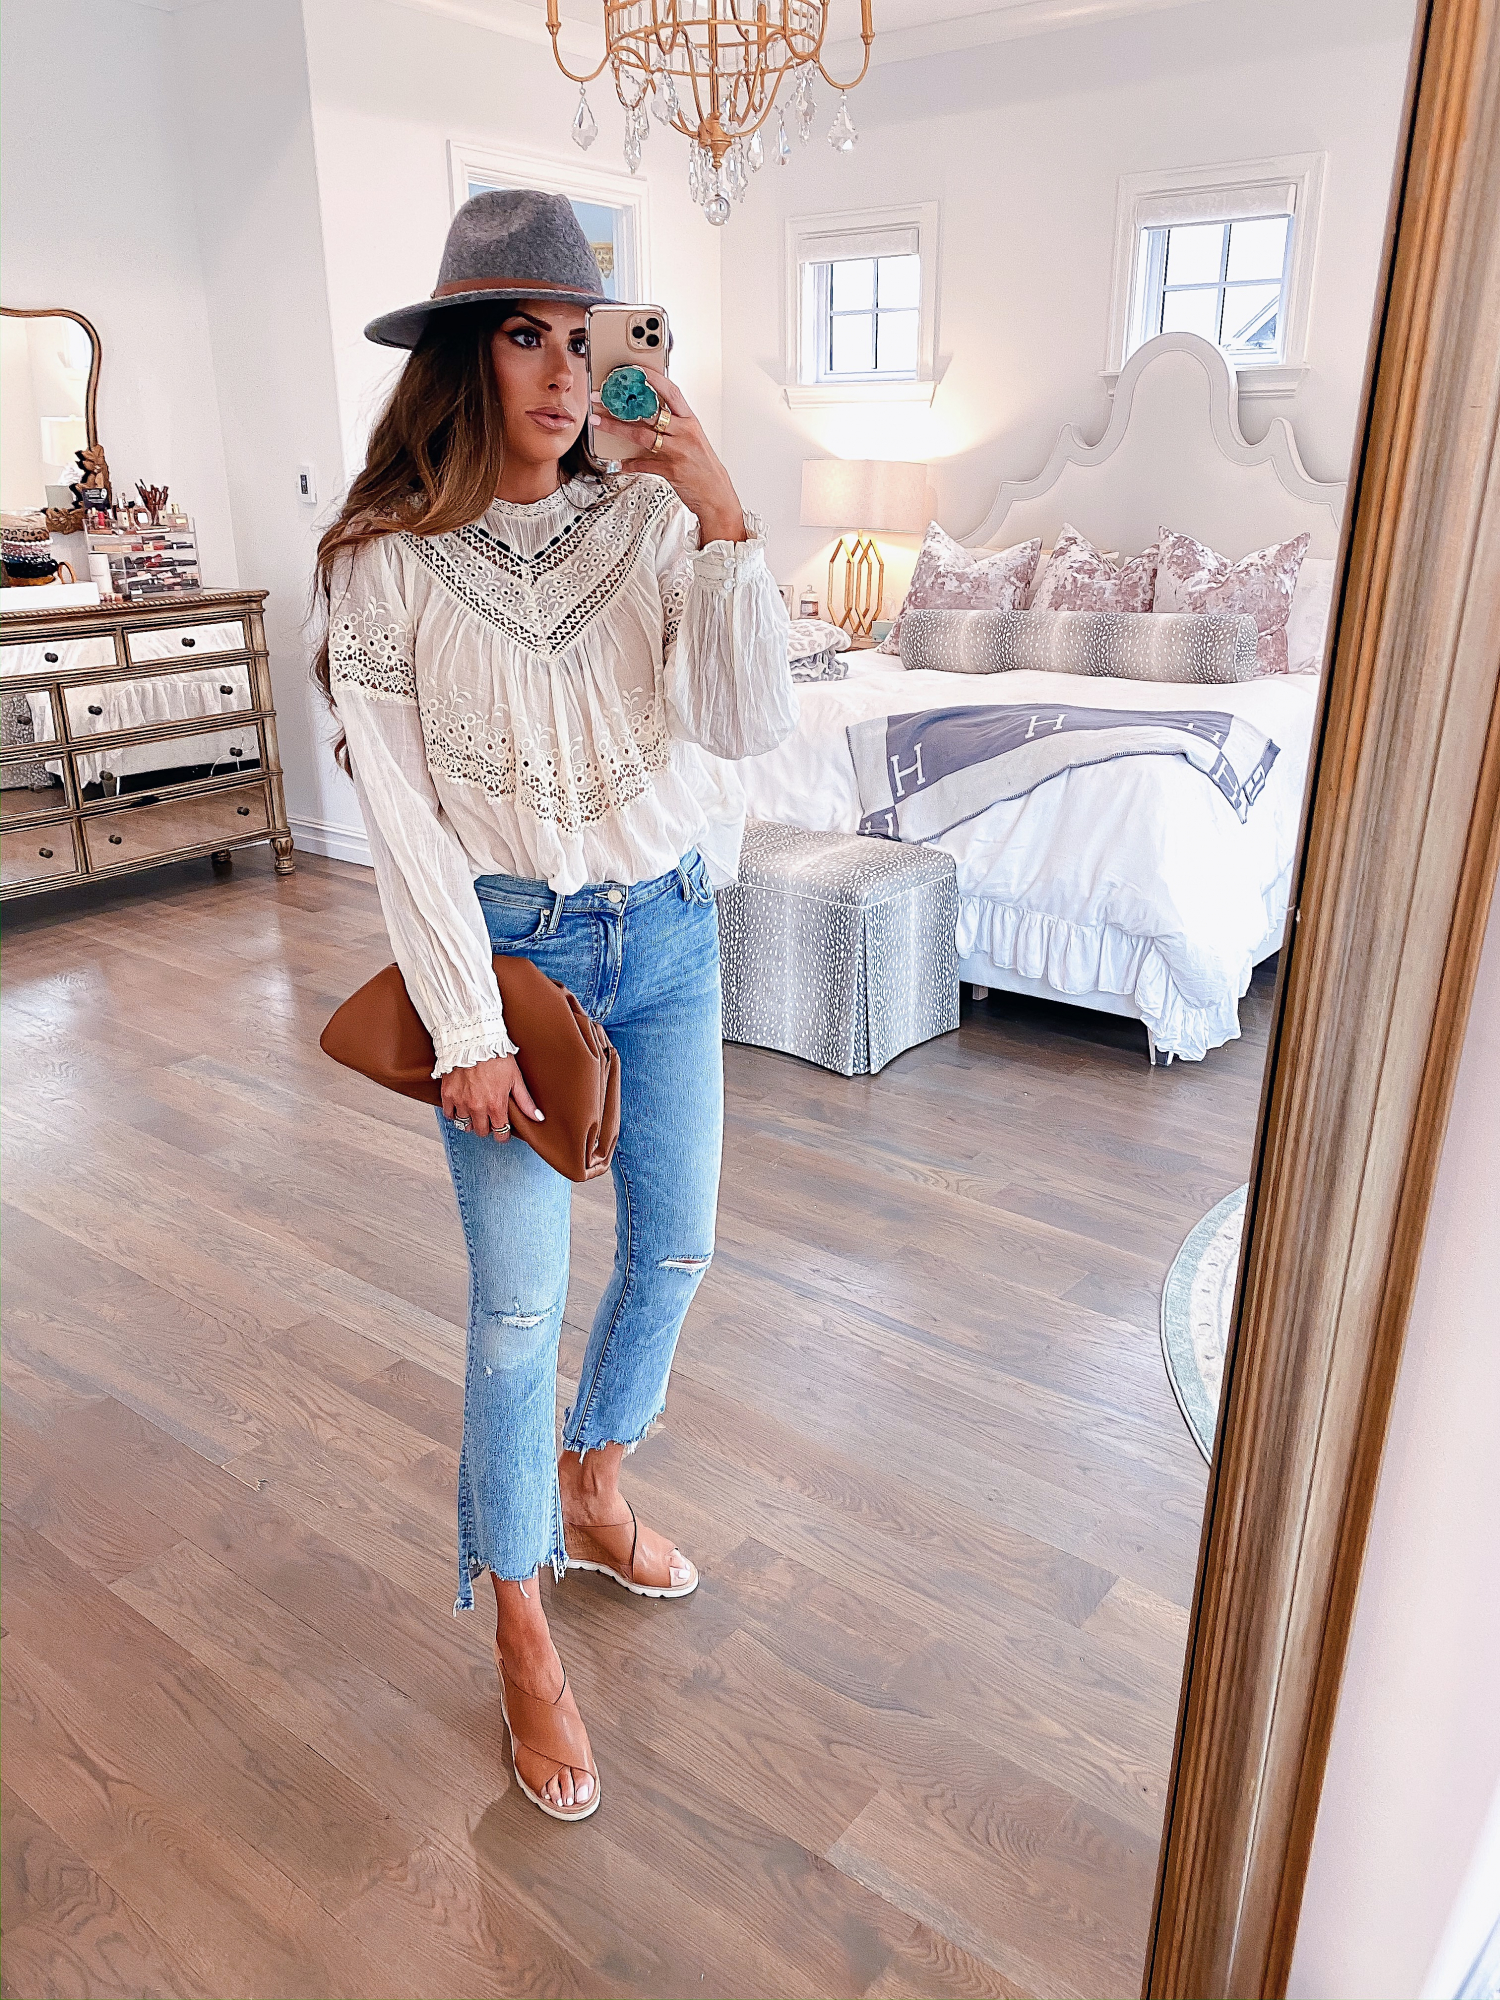 Instagram Recap by popular US lifestyle blog, The Sweetest Thing: image of Emily Gemma wearing a Free People top, Nordstrom Mother The Insider Ripped Chew Hem Crop Bootcut Jeans, PORT BUTTON STUD EARRINGS, Free People Wythe Leather Band Felt Hat, Nordstrom Pillow Talk Lip Cheat Lip Liner CHARLOTTE TILBURY, Nordstrom Hot Lips Lipstick CHARLOTTE TILBURY, Nordstrom Gloss Luxe Moisturizing Lipgloss TOM FORD, Steve Madden FLORETTA COGNAC LEATHER wedges, and holding a Net-A-Porter BOTTEGA VENETA The Pouch small gathered leather clutch.